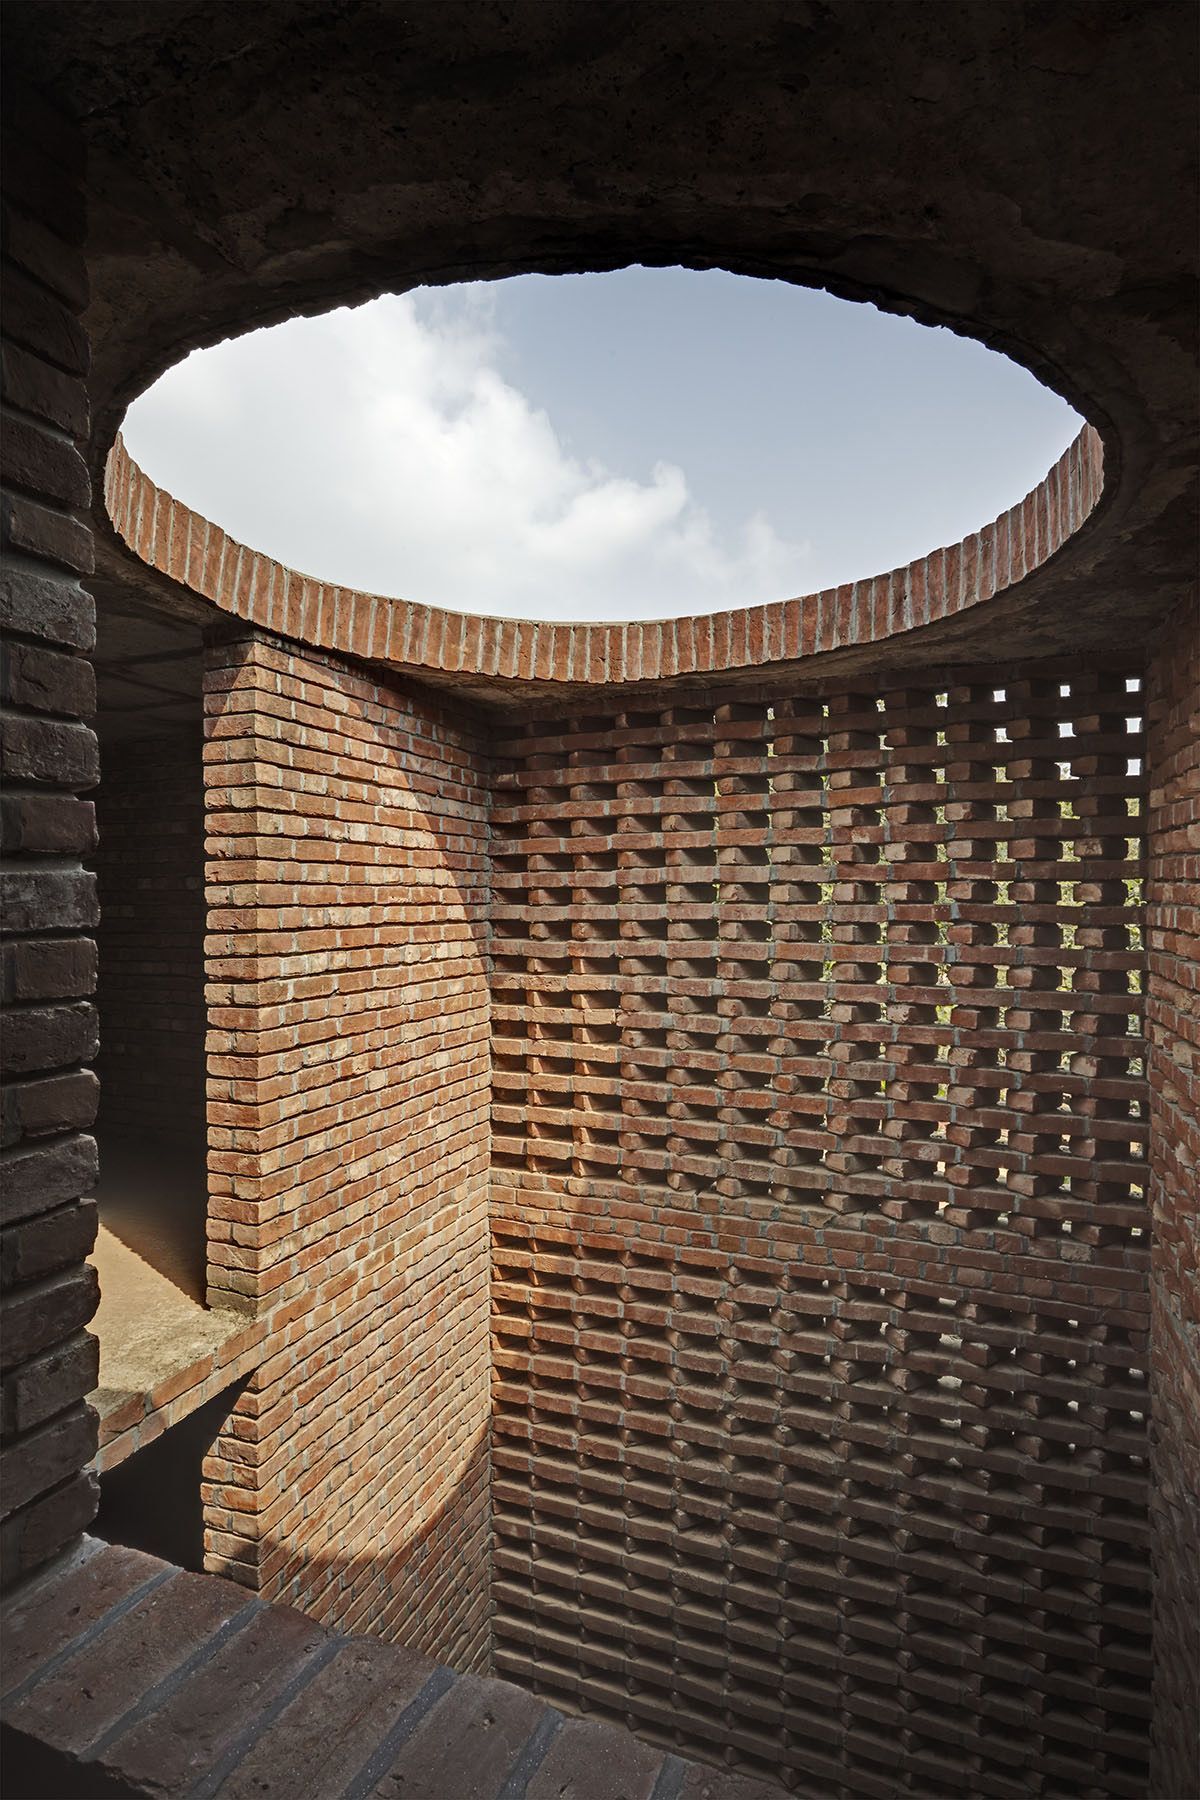 The prayer hall separates itself from the rest of the structure by open-to-sky light wells between the cylinder and the inner square. Light pours down on the unplastered brick walls, giving it a primordial character | Archnet